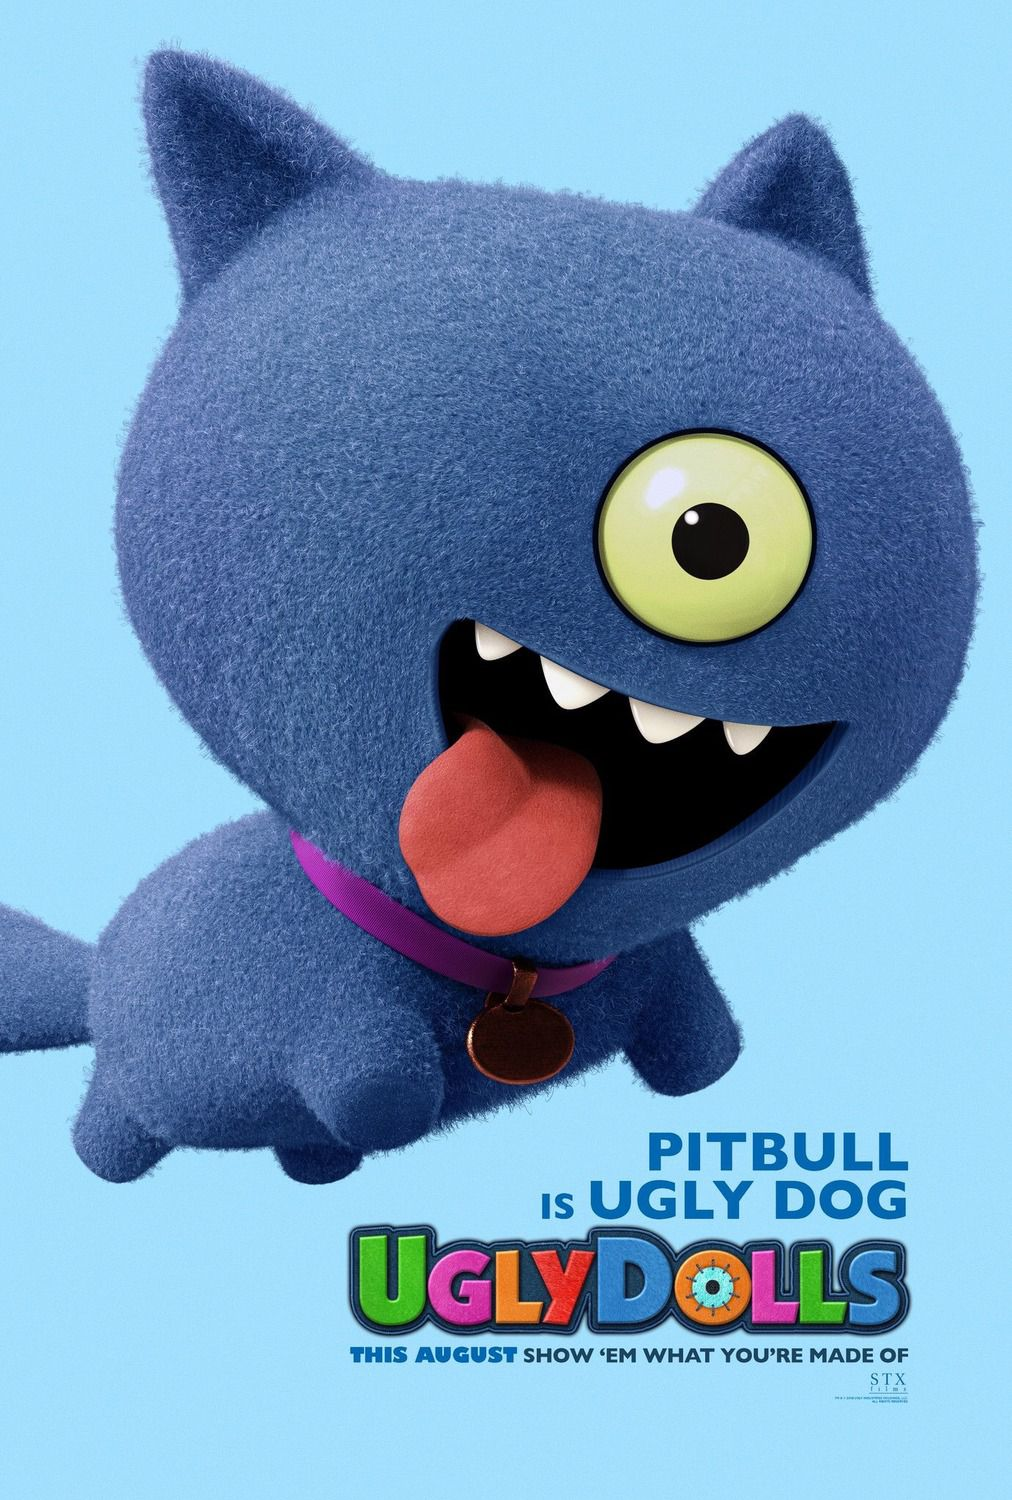 Pitbull is UglyDoll